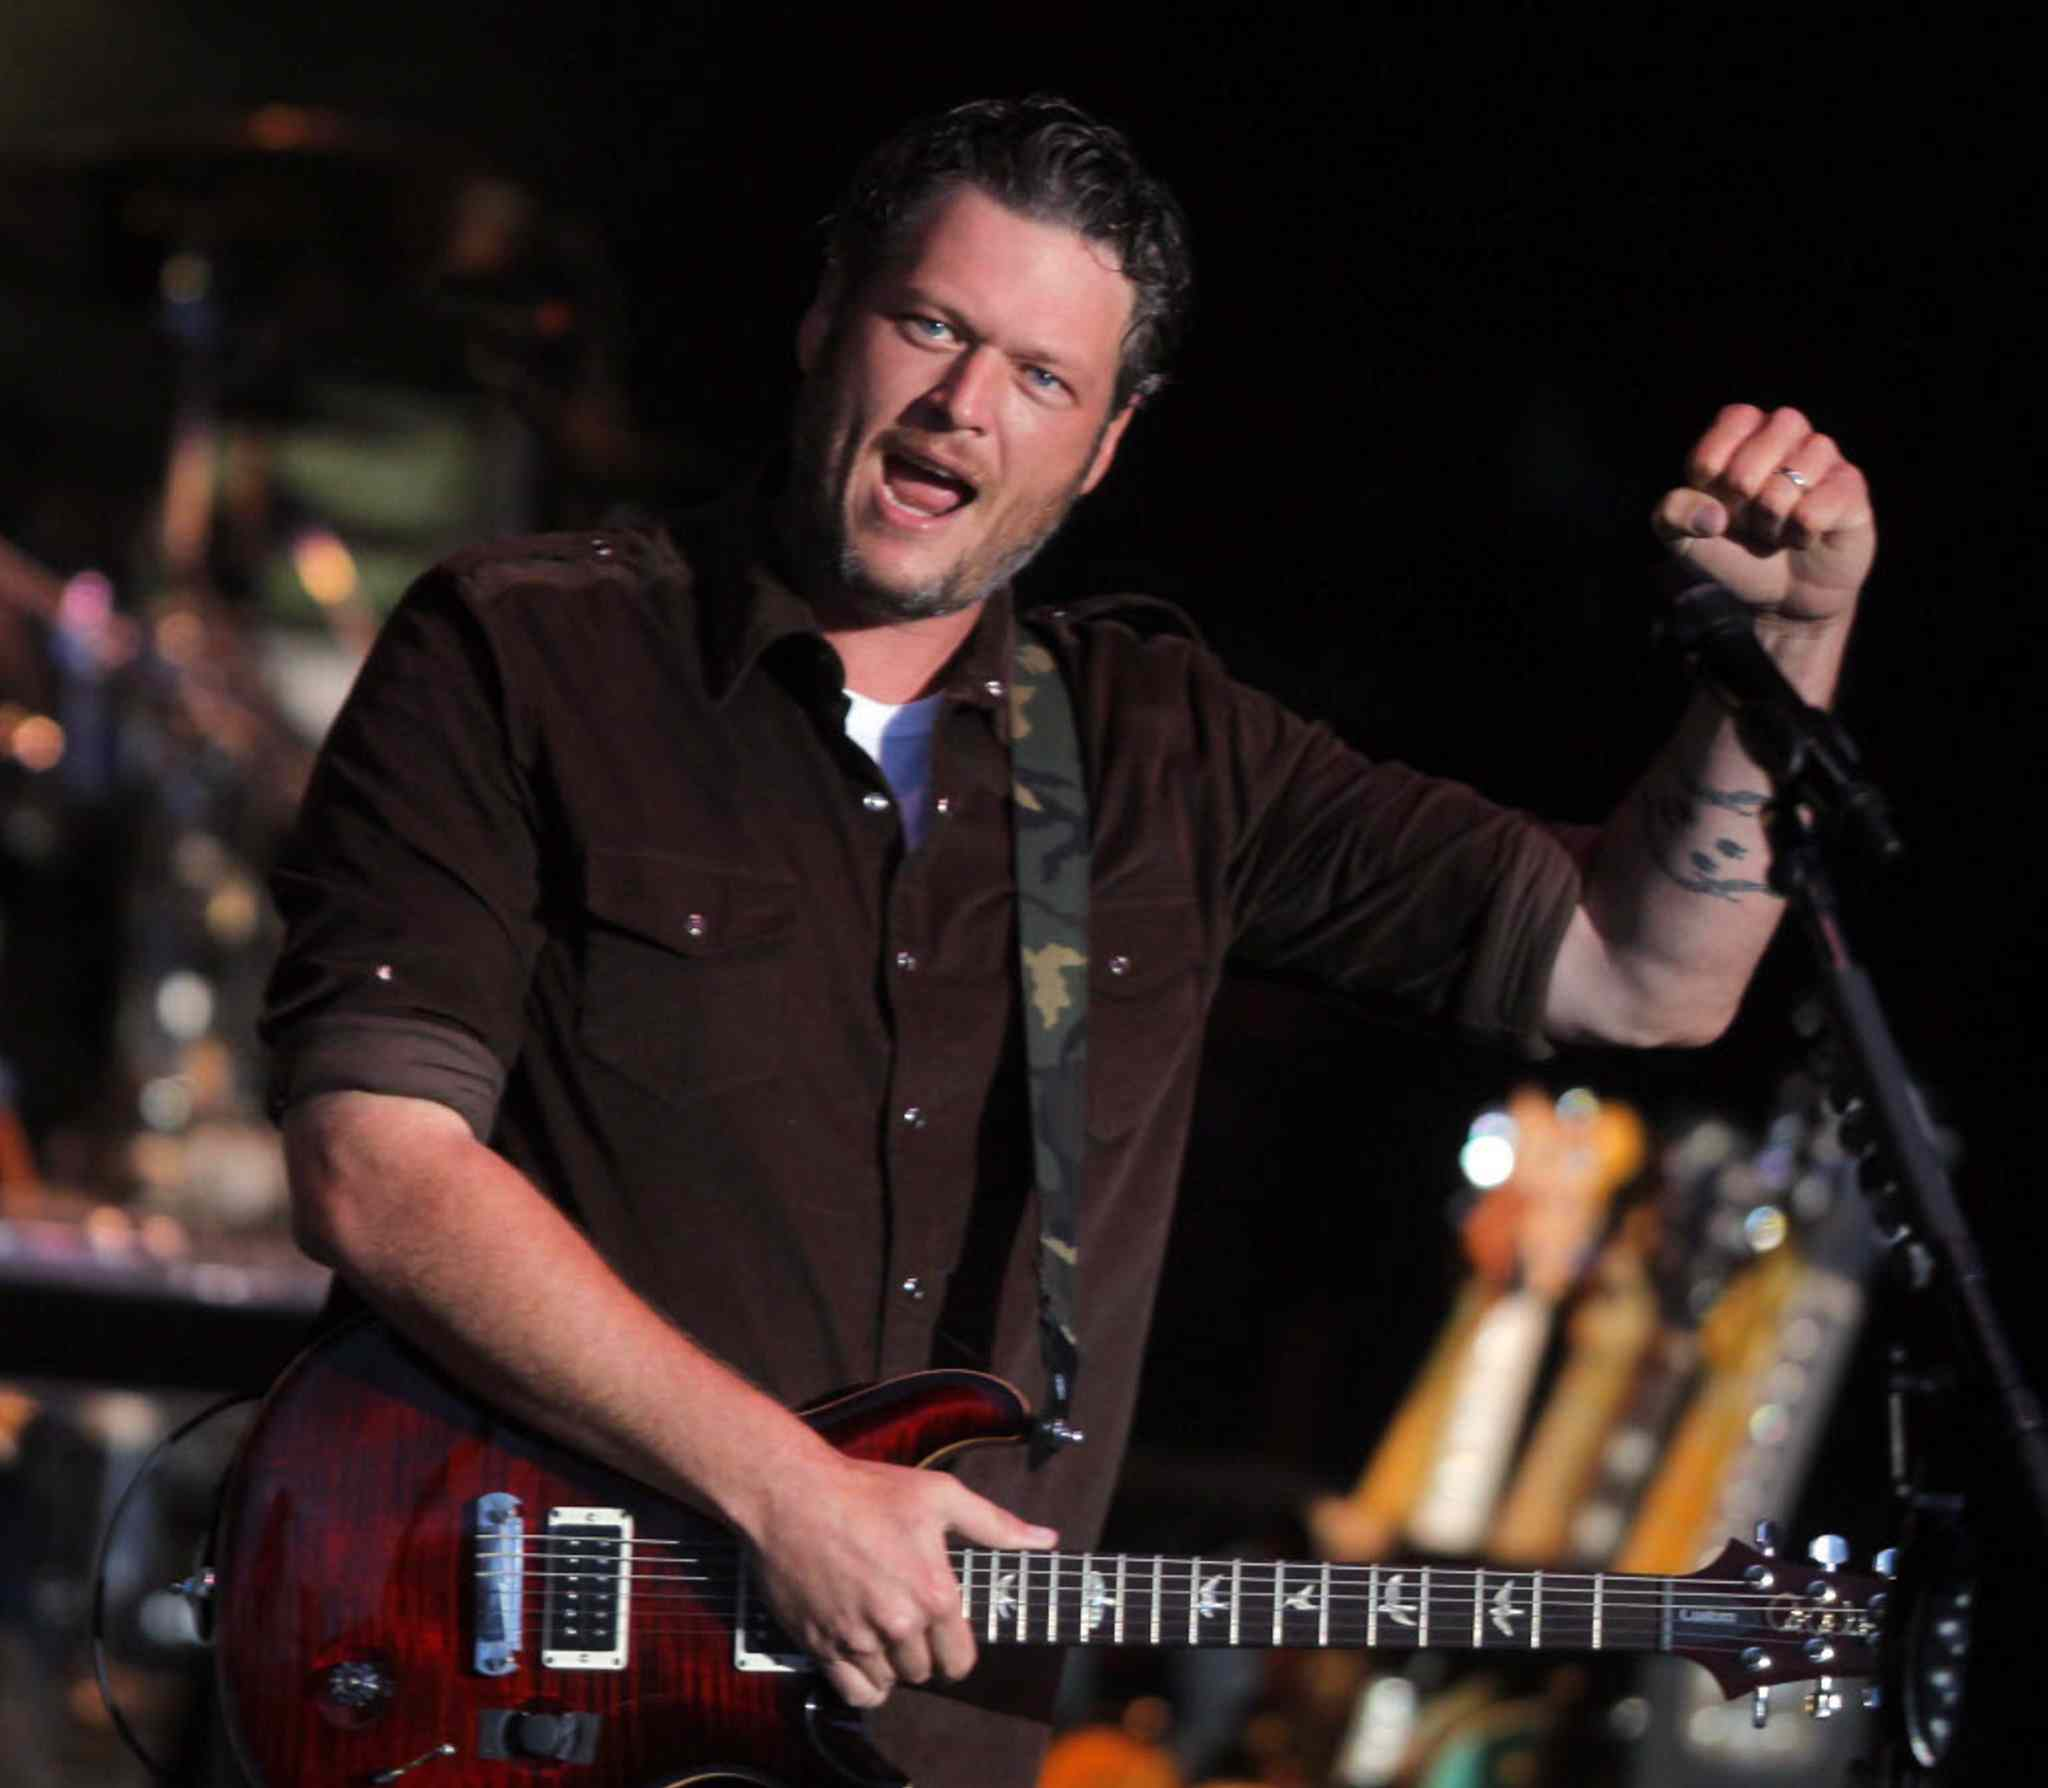 Blake Shelton gives the Countryfest crowd what they like.